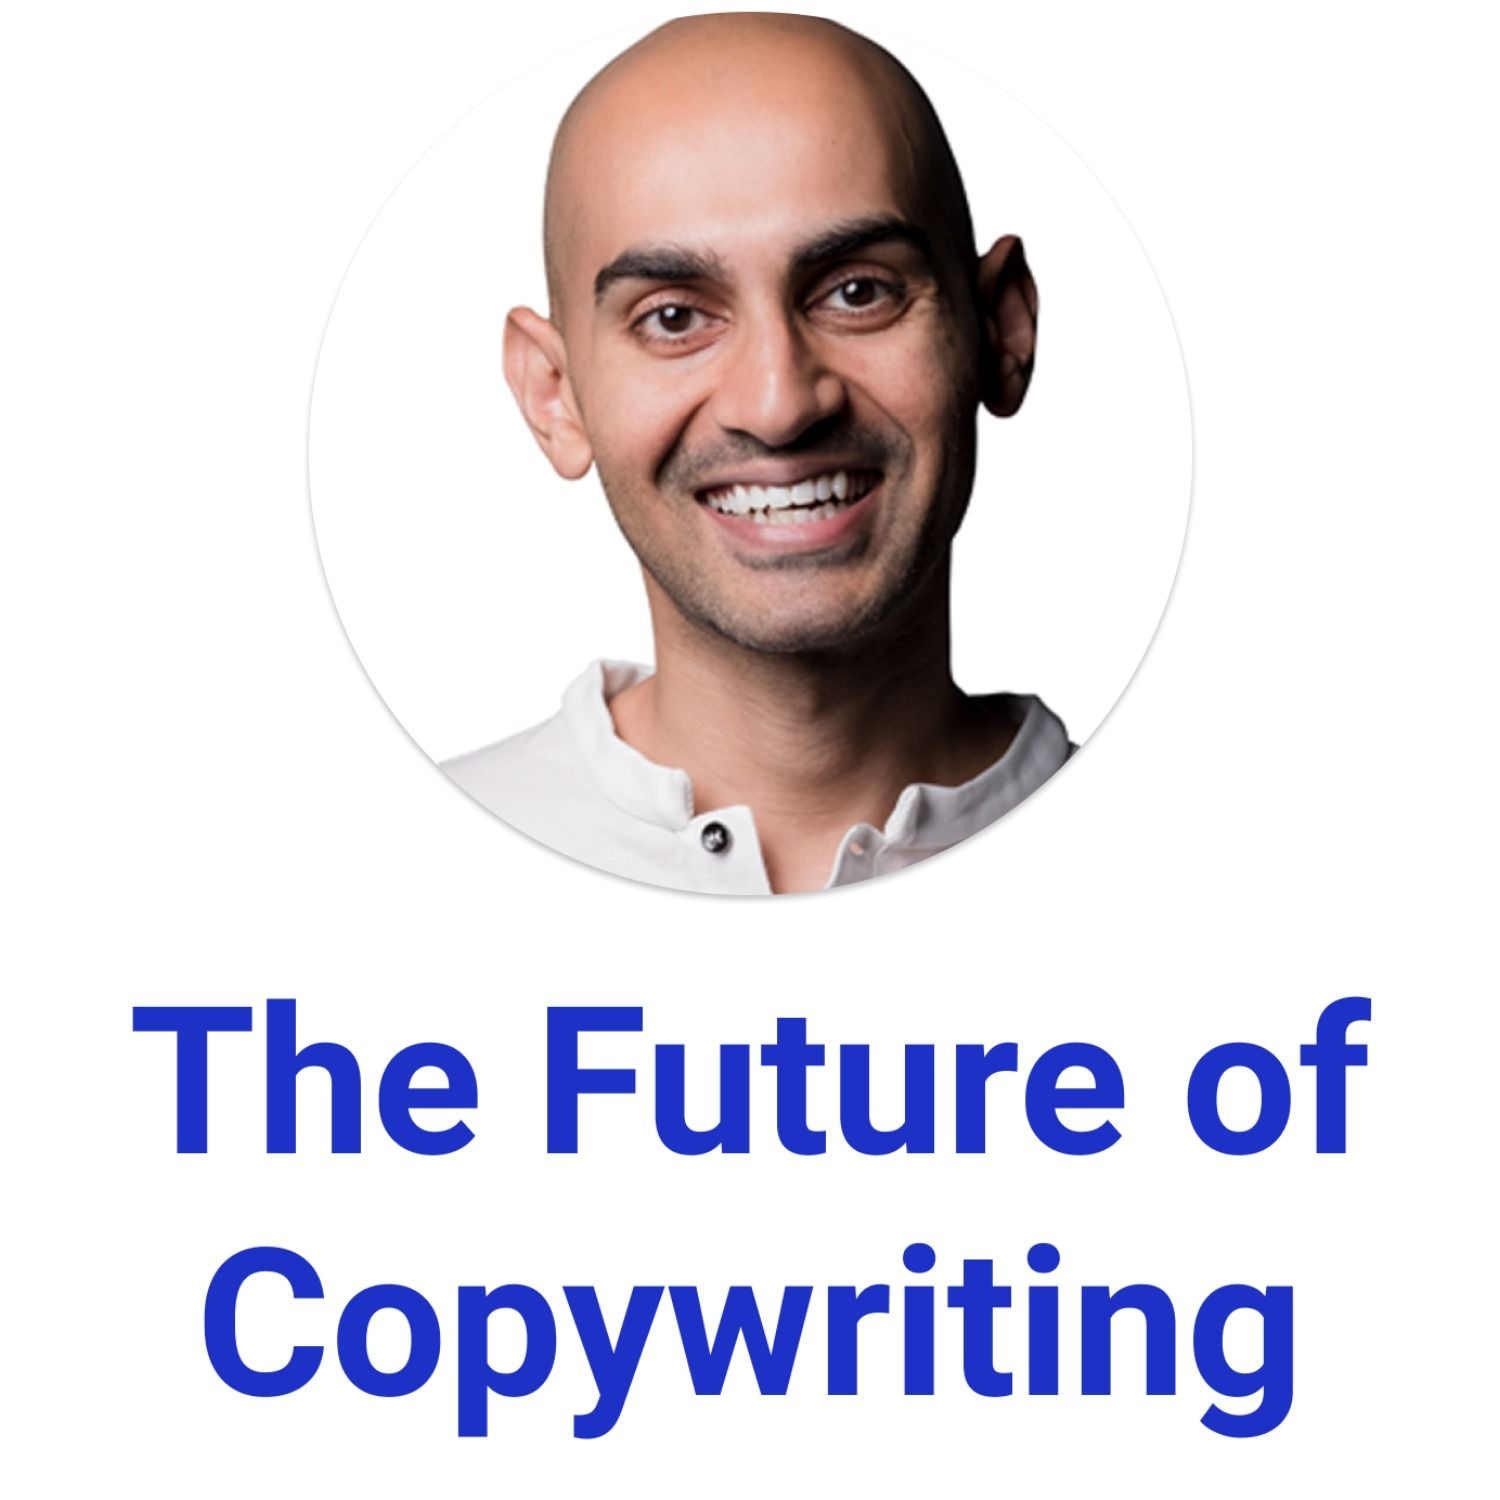 The future of copywriting with best selling author Neil Patel